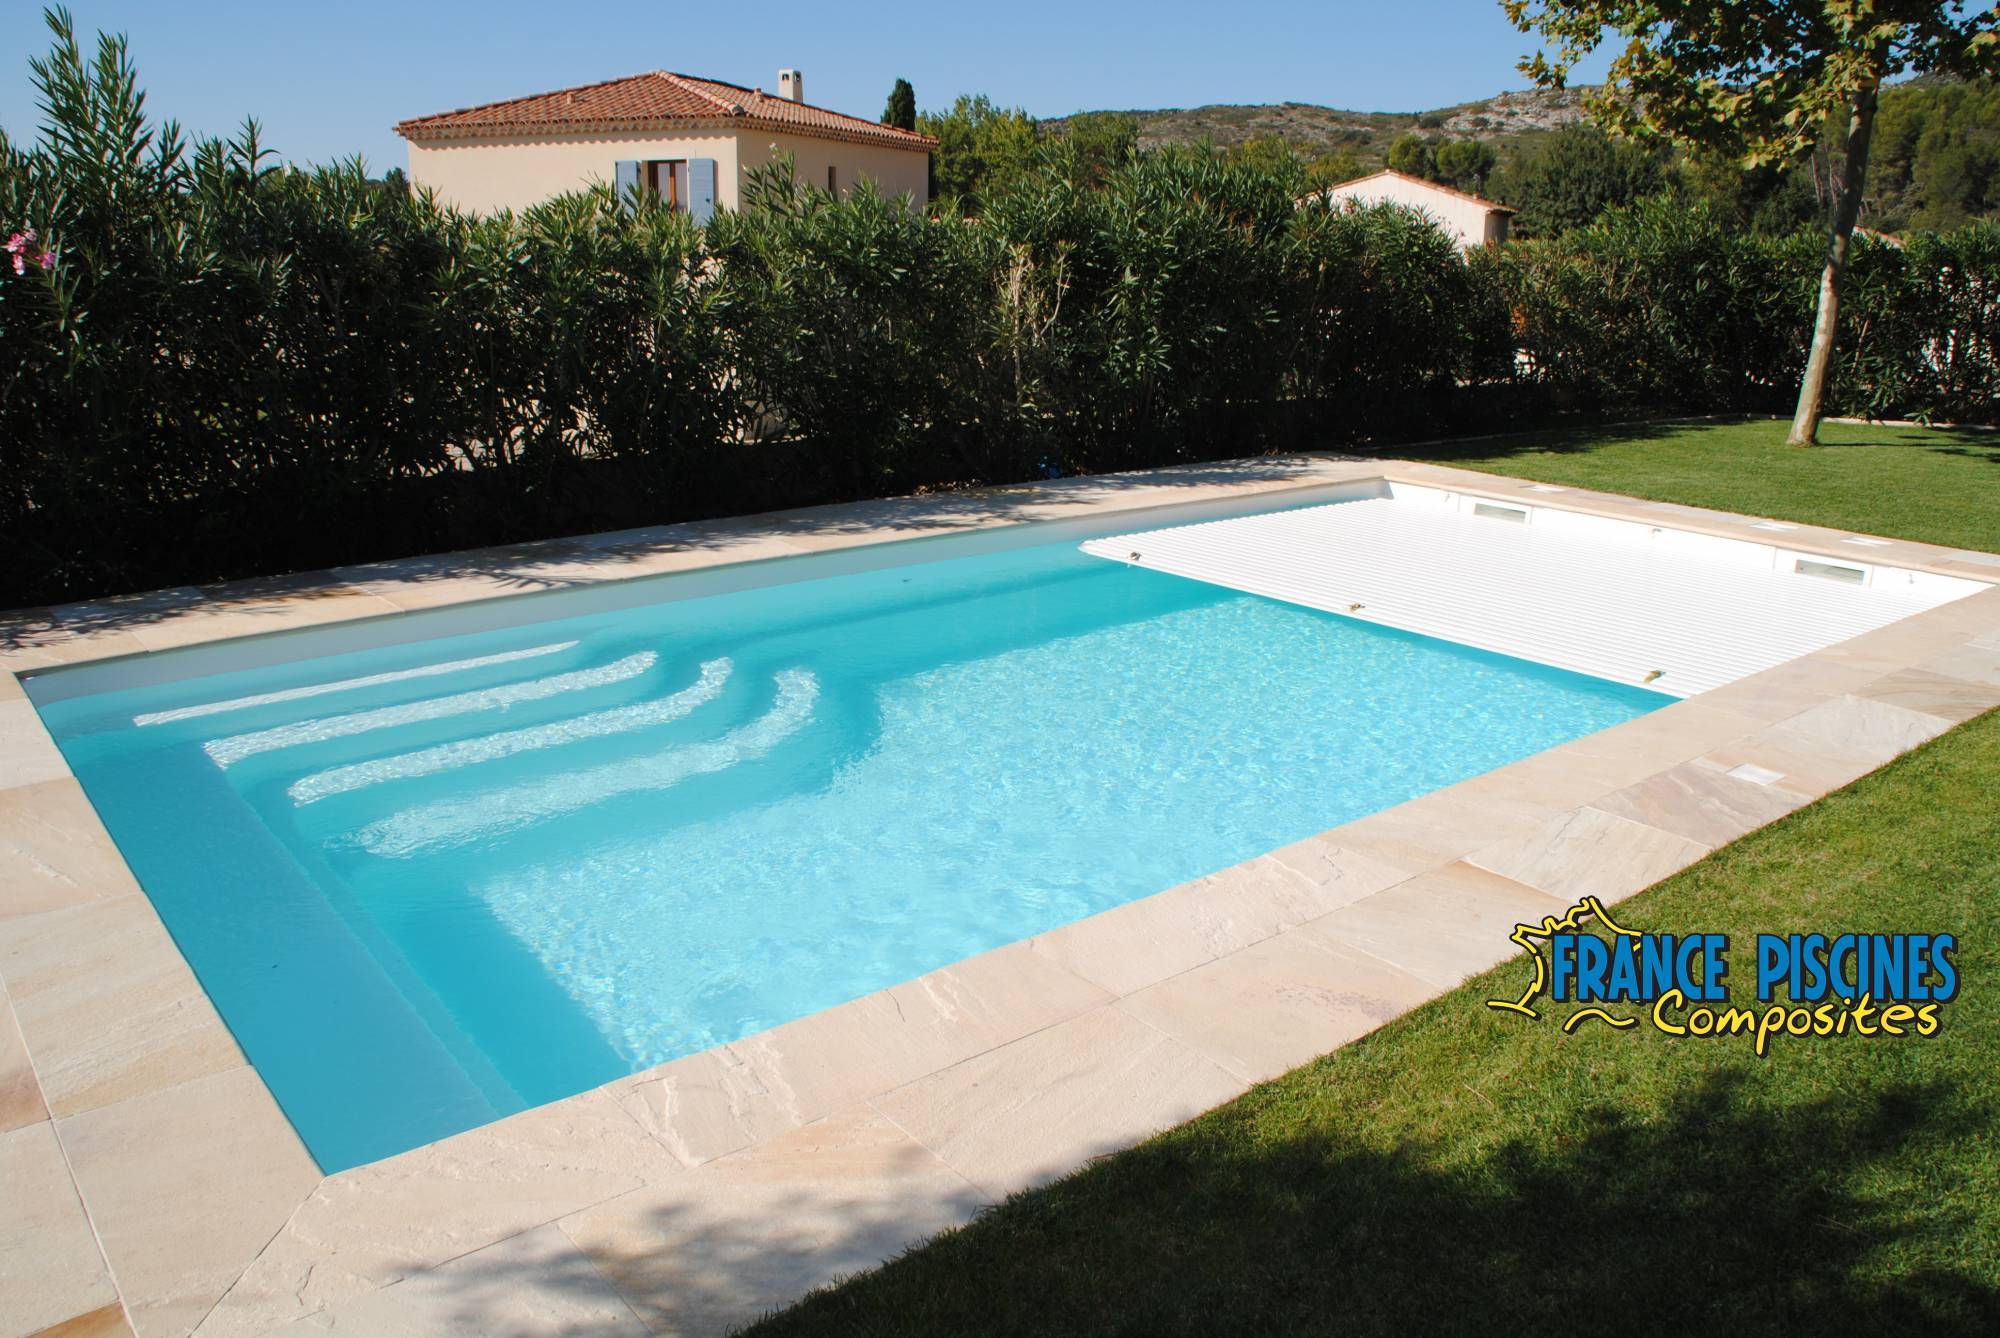 Vente et pose de piscine enterr e coque polyester for Piscine coque debordement